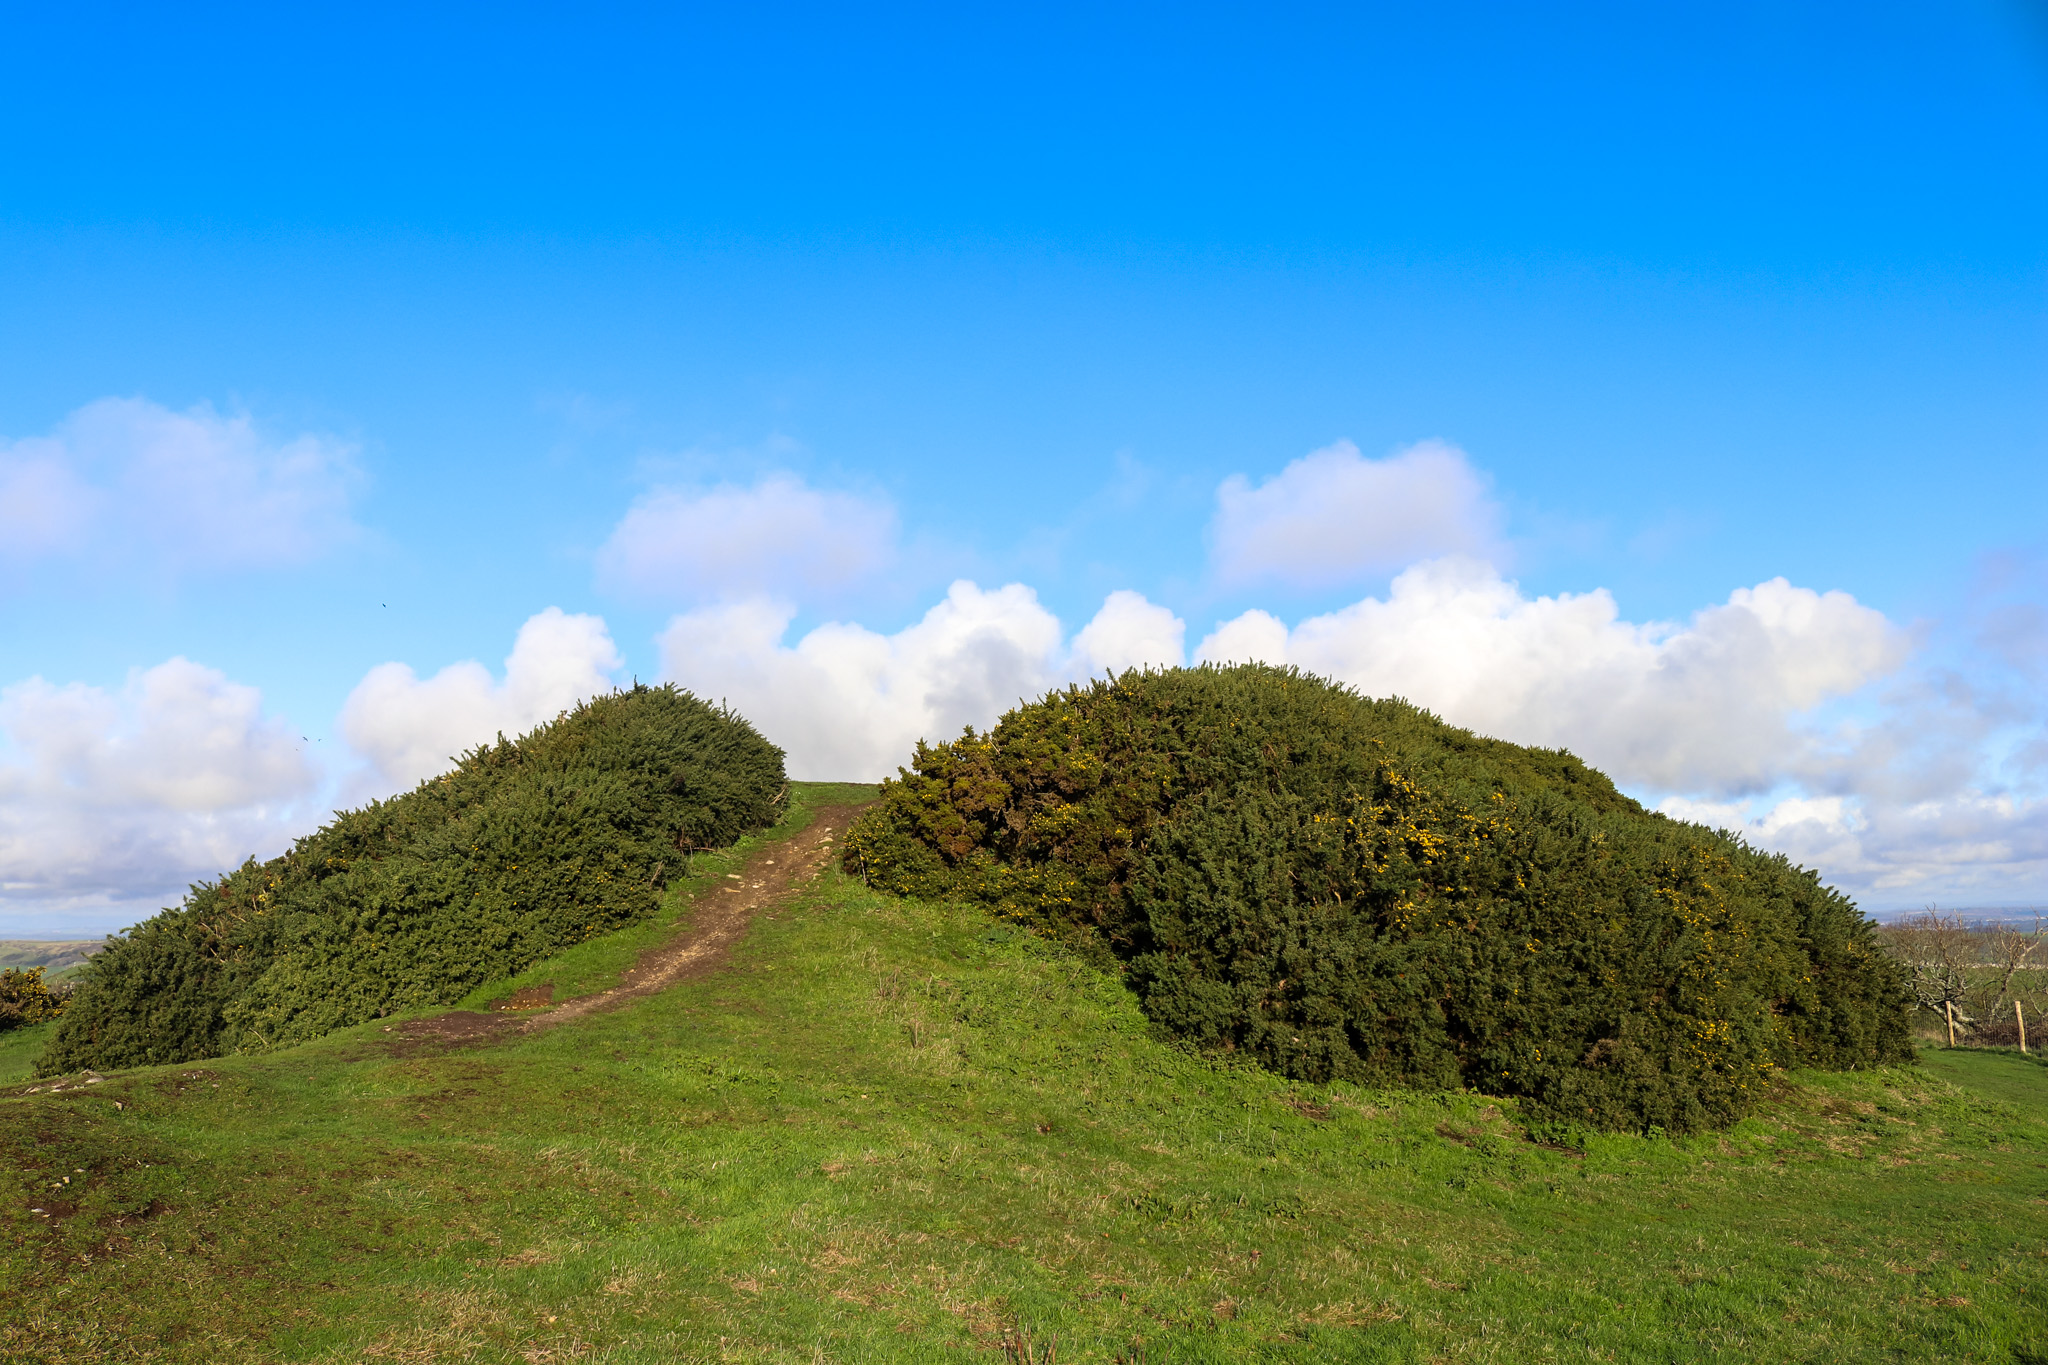 The mound at Swyre Head, Purbeck